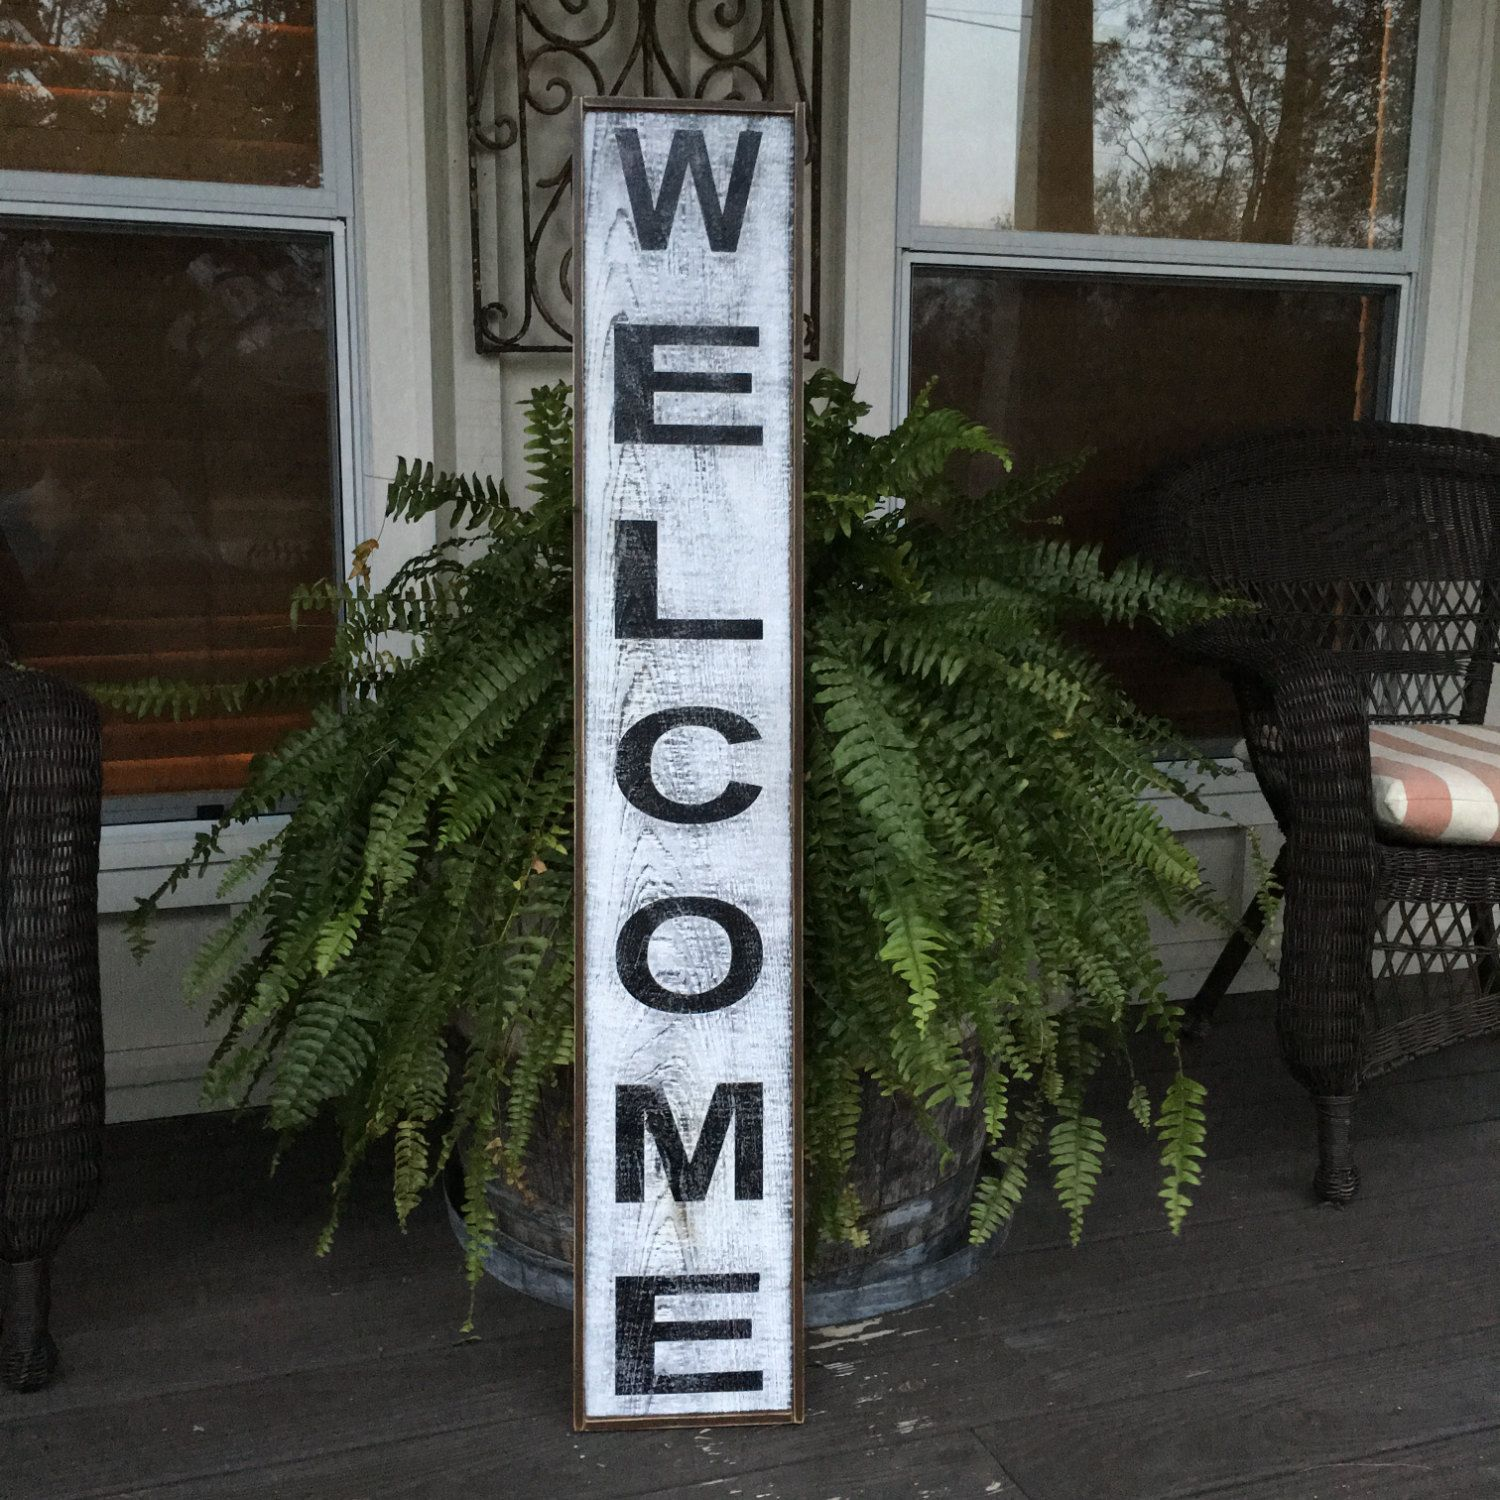 Welcome signfixer upper signs41x725 rustic wood signs welcome signfixer upper signs41x725 rustic wood signs farmhouse signs amipublicfo Image collections